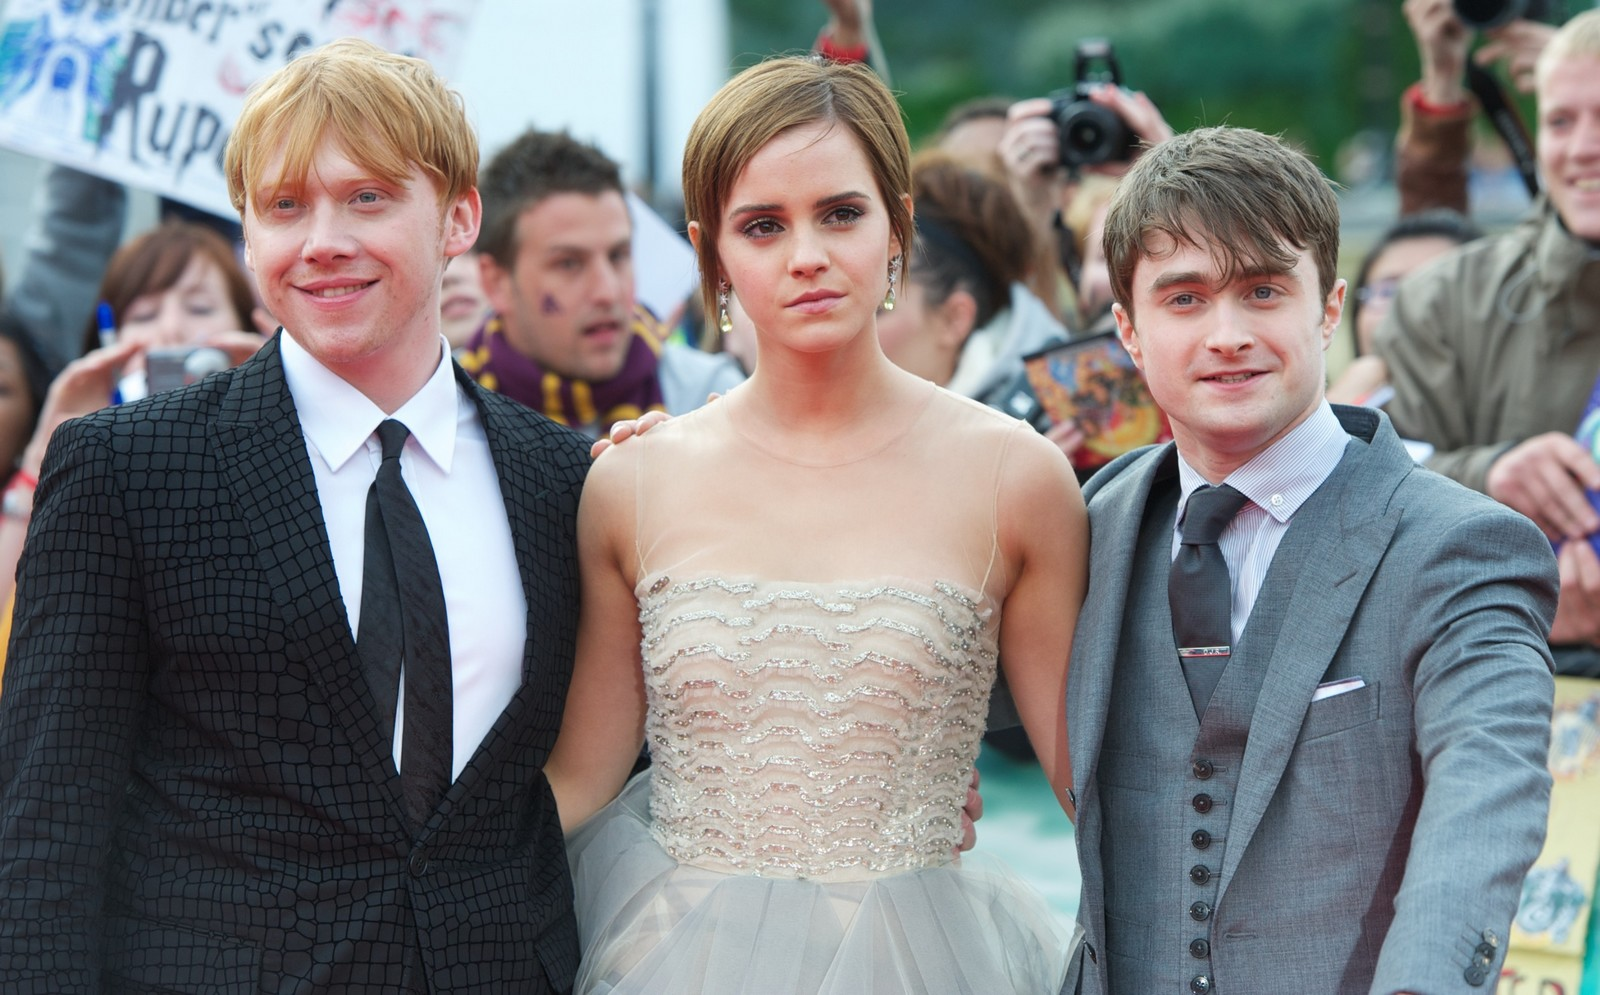 Deathly hallows pt 2 premiere new york 11 july 2011